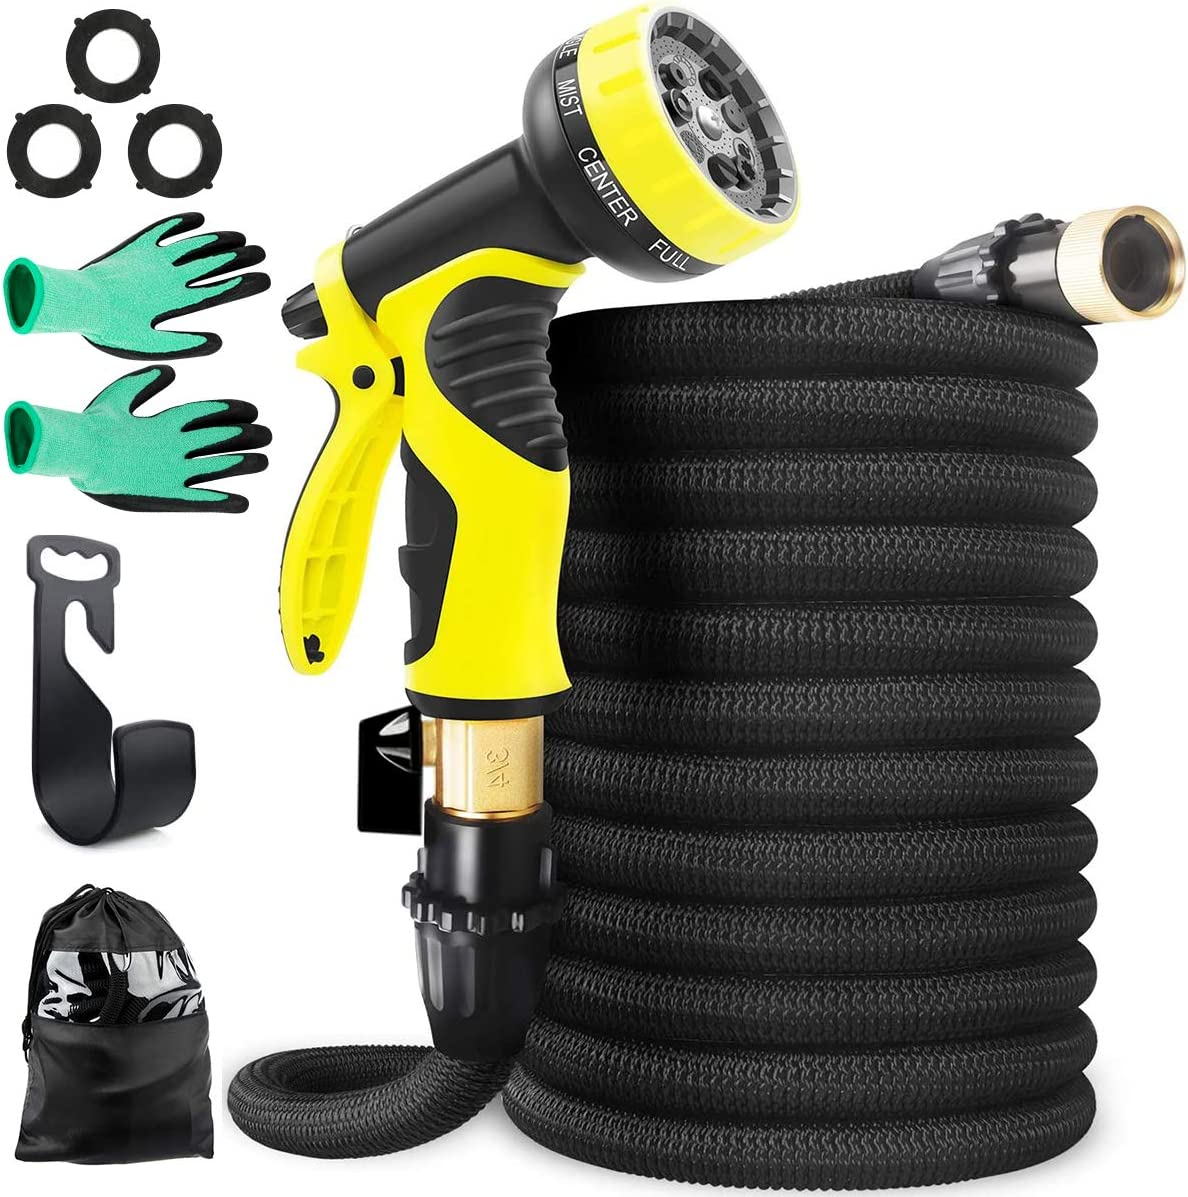 BluePowe Expandable Garden Hose & 9 Function Nozzle,50 FT Lightweight/Retractable/Flexible Water Hose, Extra Strength with 3/4 Inch Solid Brass Fittings & Triple Latex Core Rot, Crack, Leak Resistant